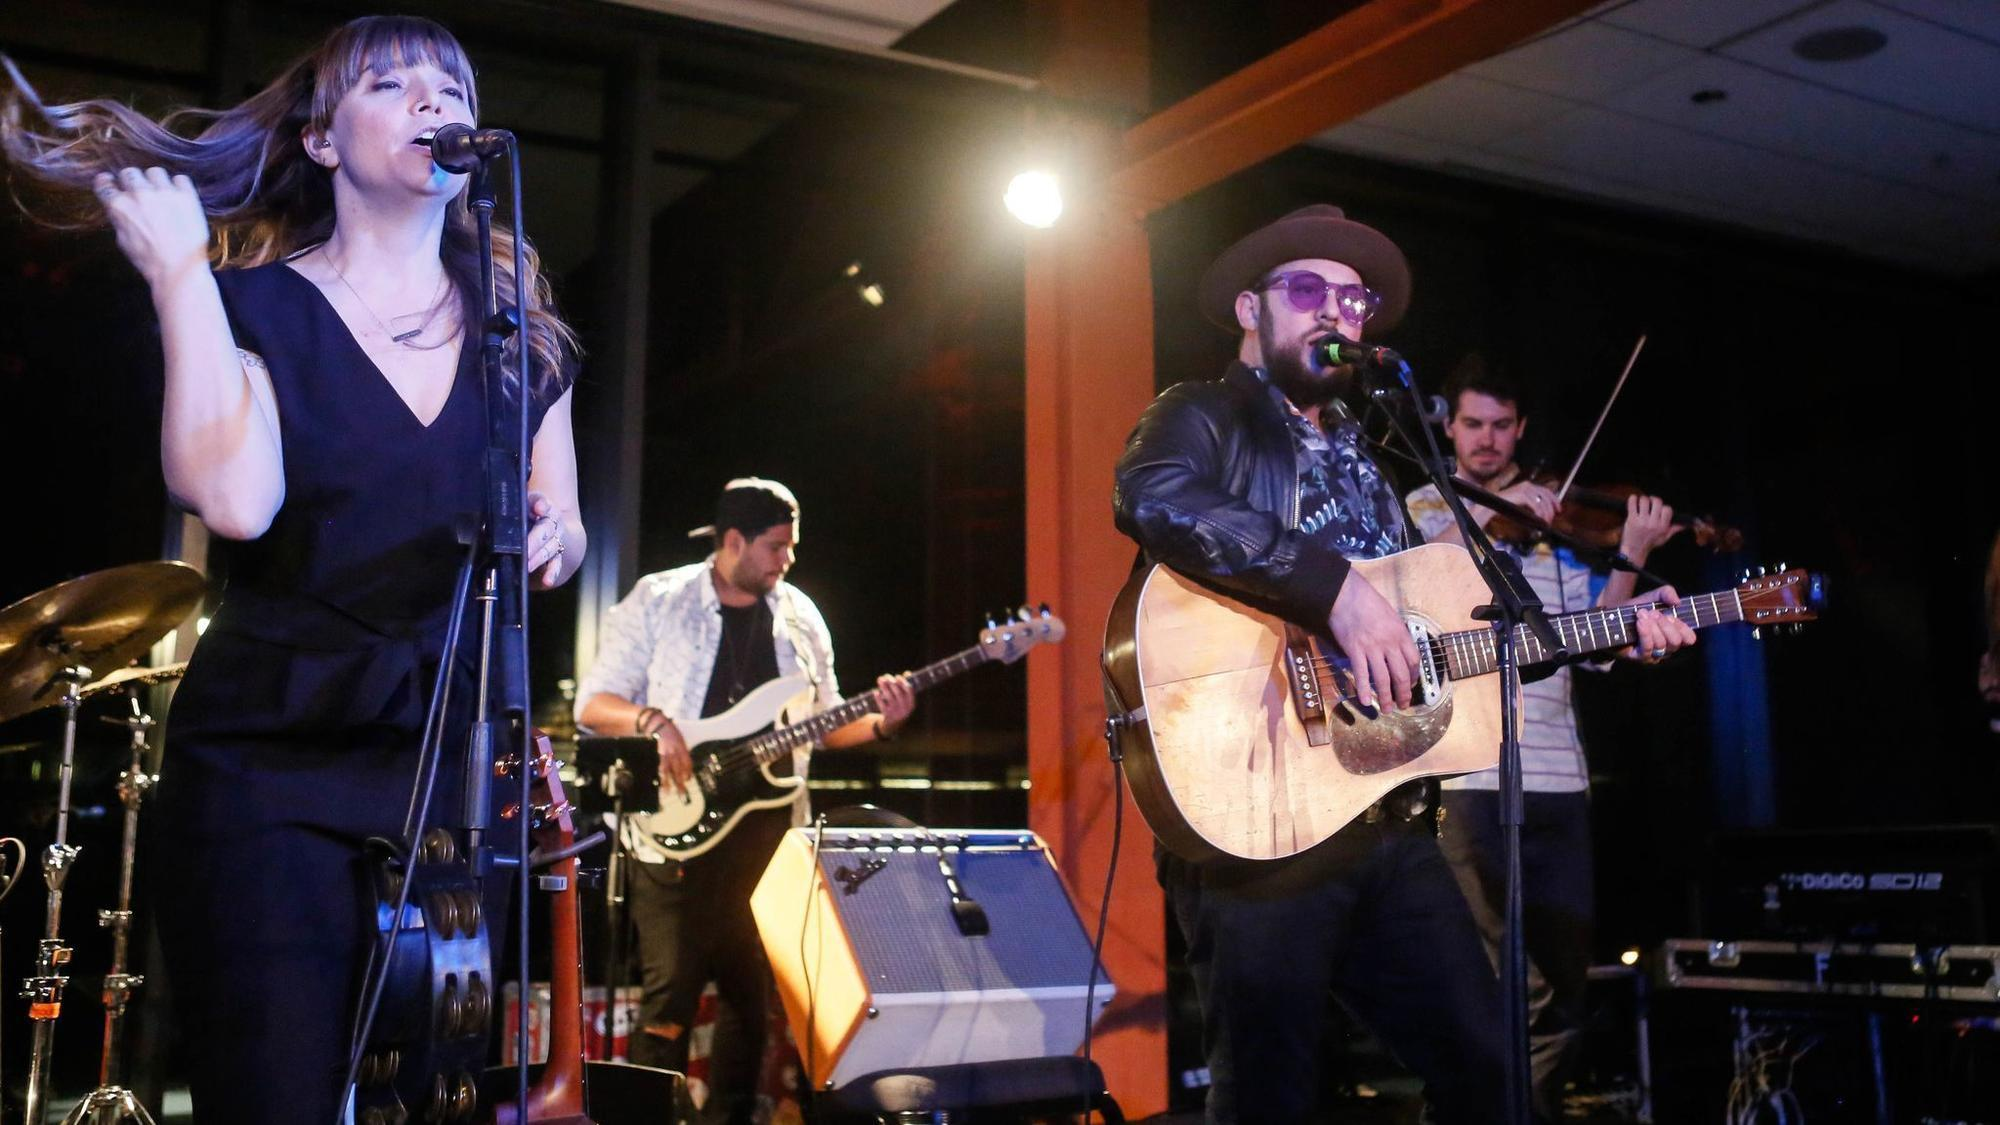 Review Dustbowl Revival At Artsquest Center Is Great To